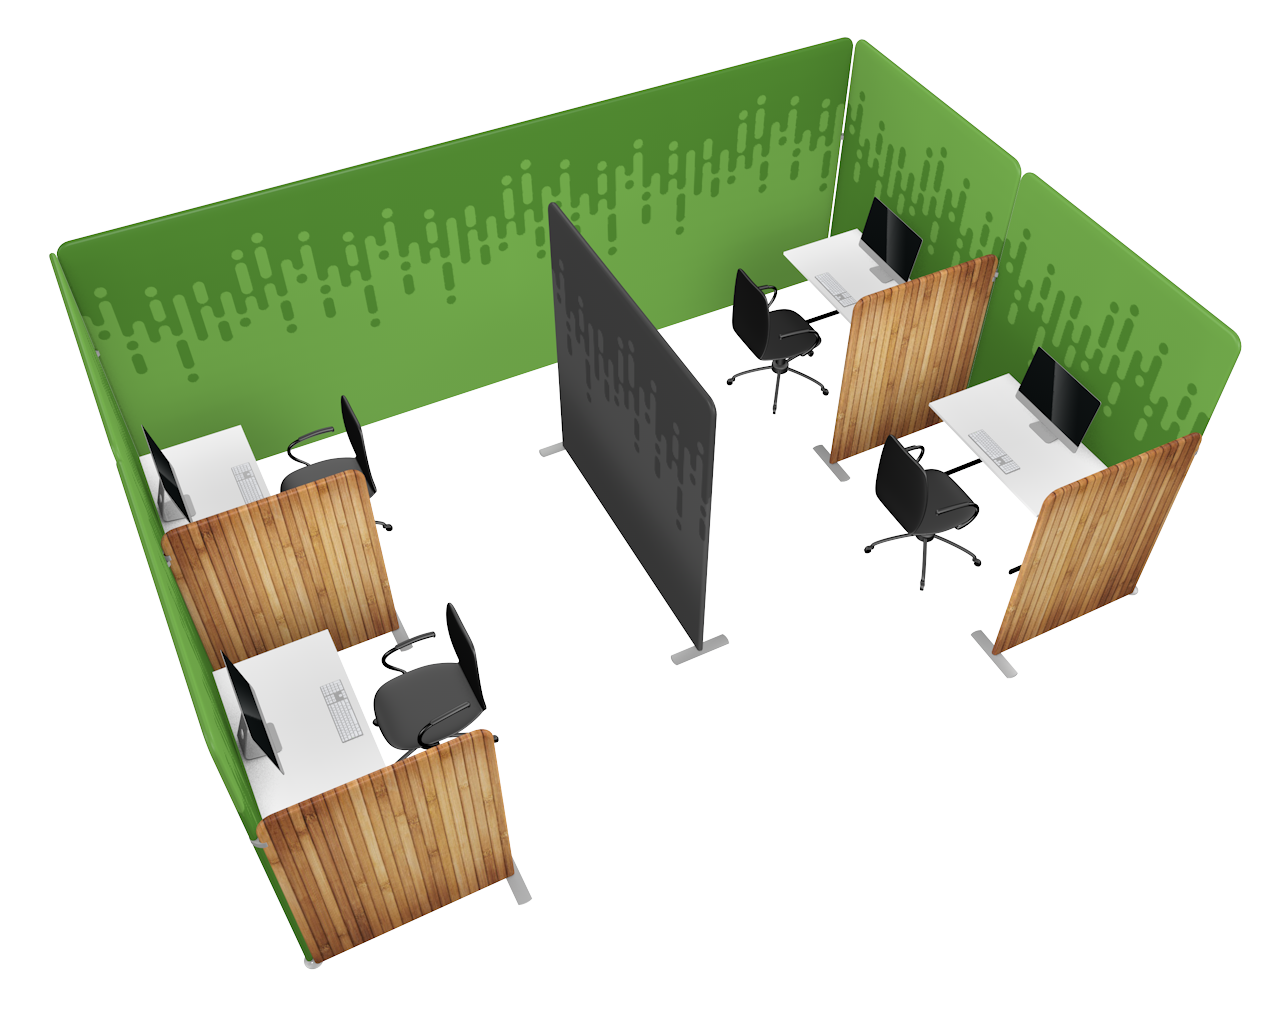 workplace divider kit_4.png